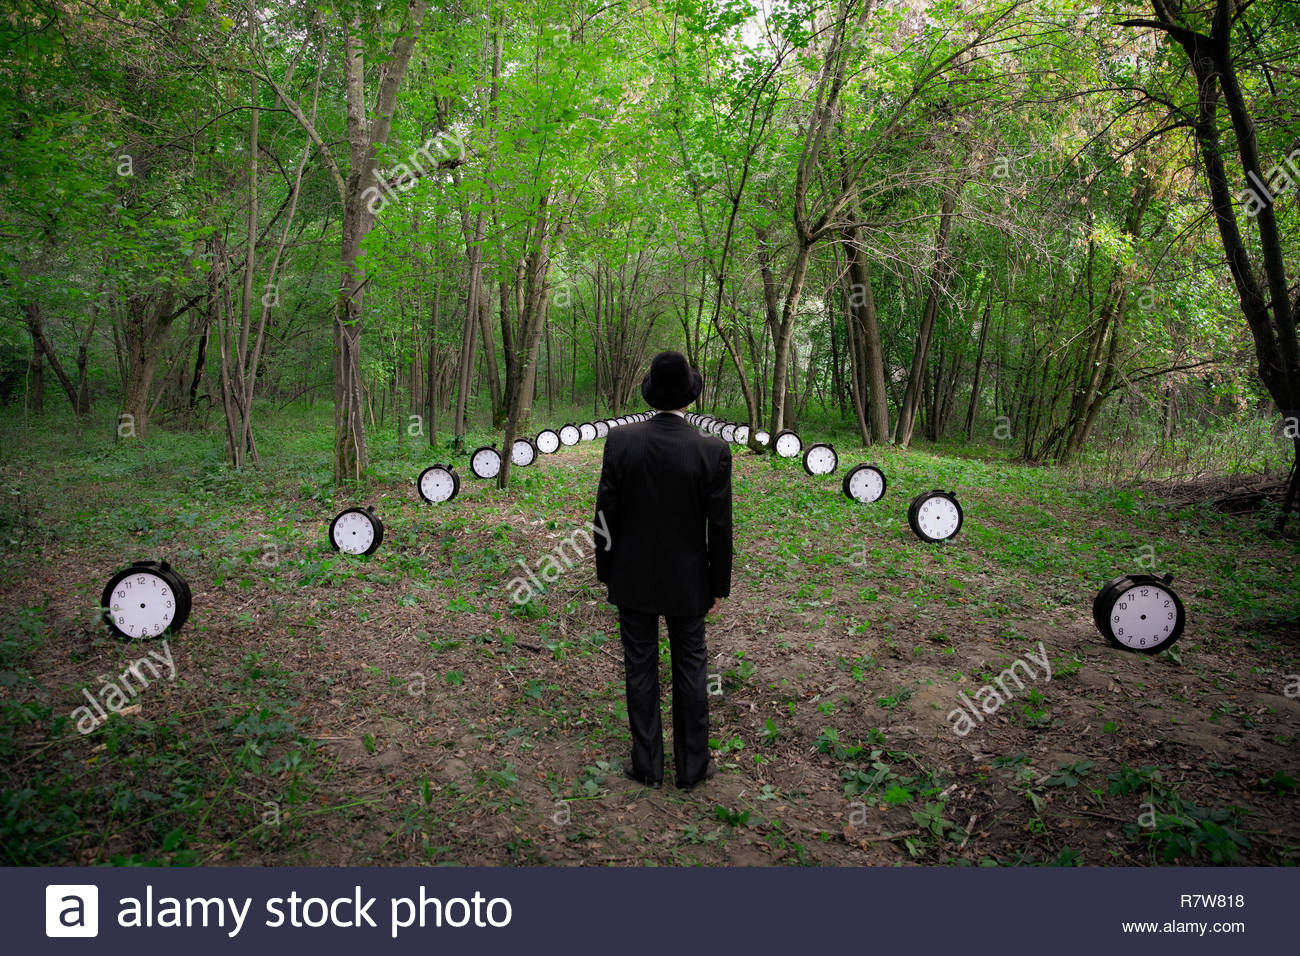 A man dressed in black, within a forest, stands in the foreground, at the beginning of a time path made by 50 no-hand clocks. - Stock Image